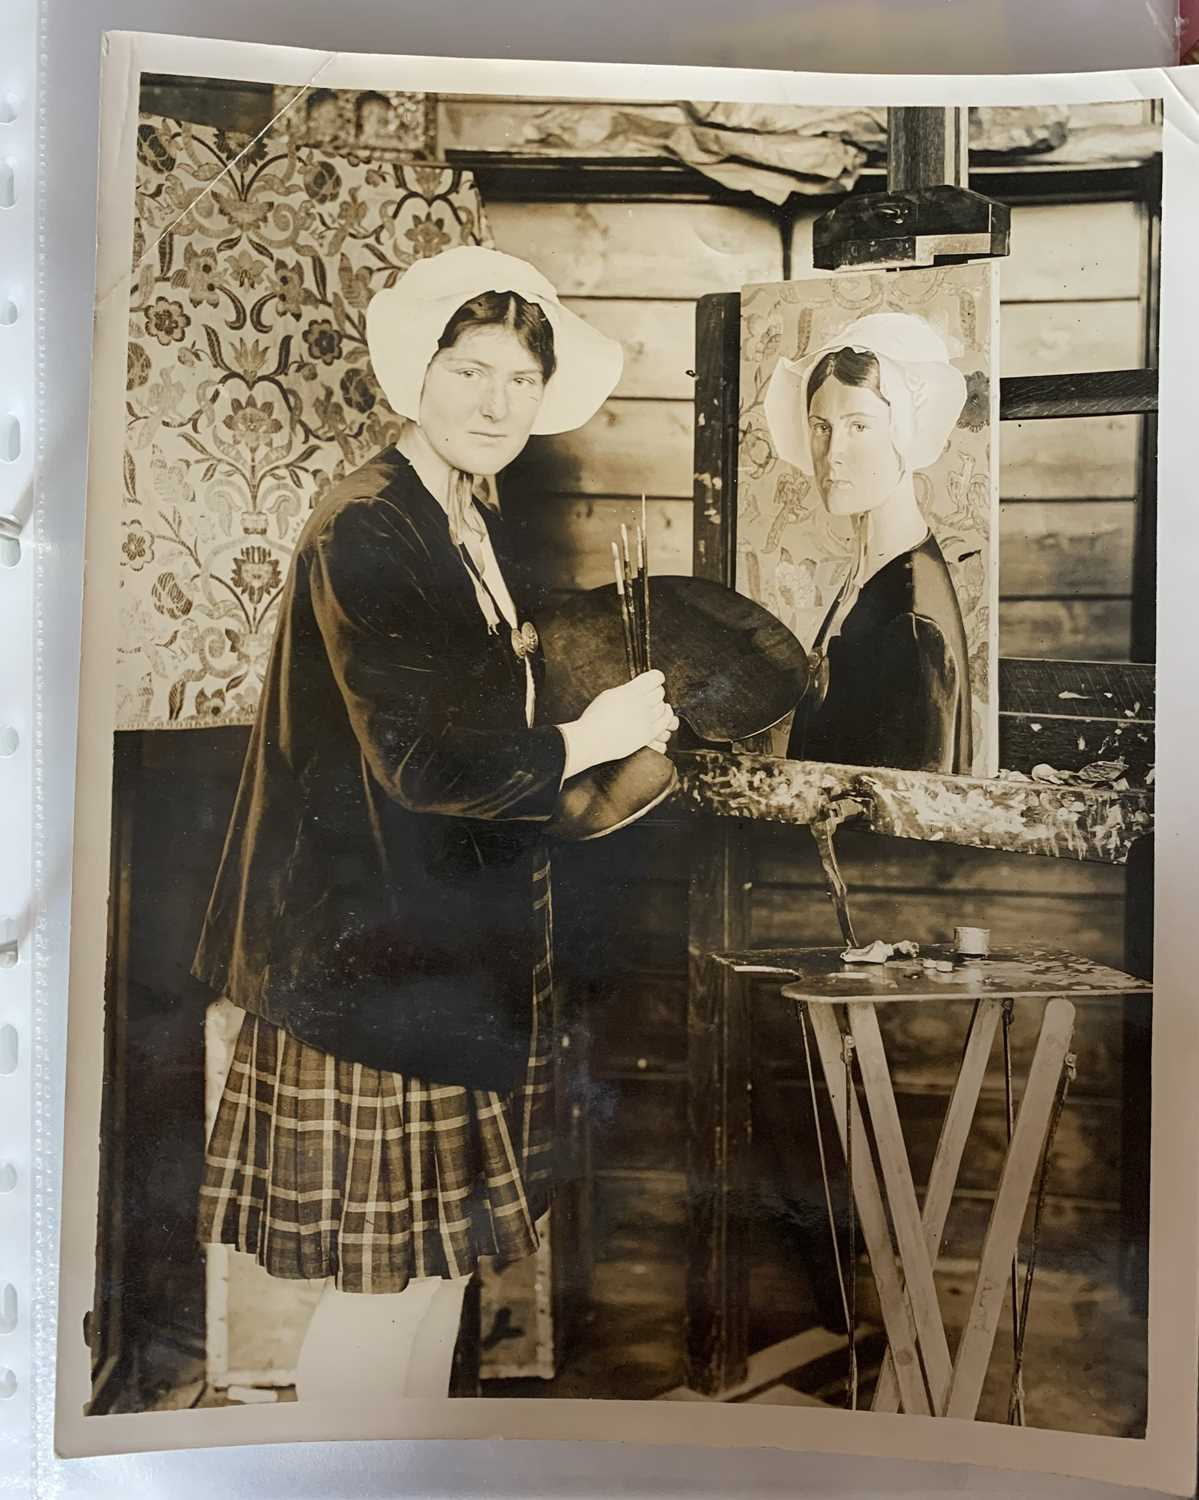 Joan Manning Sanders 1913-2002 Her personal archive. A fascinating collection of photographs and - Image 25 of 32